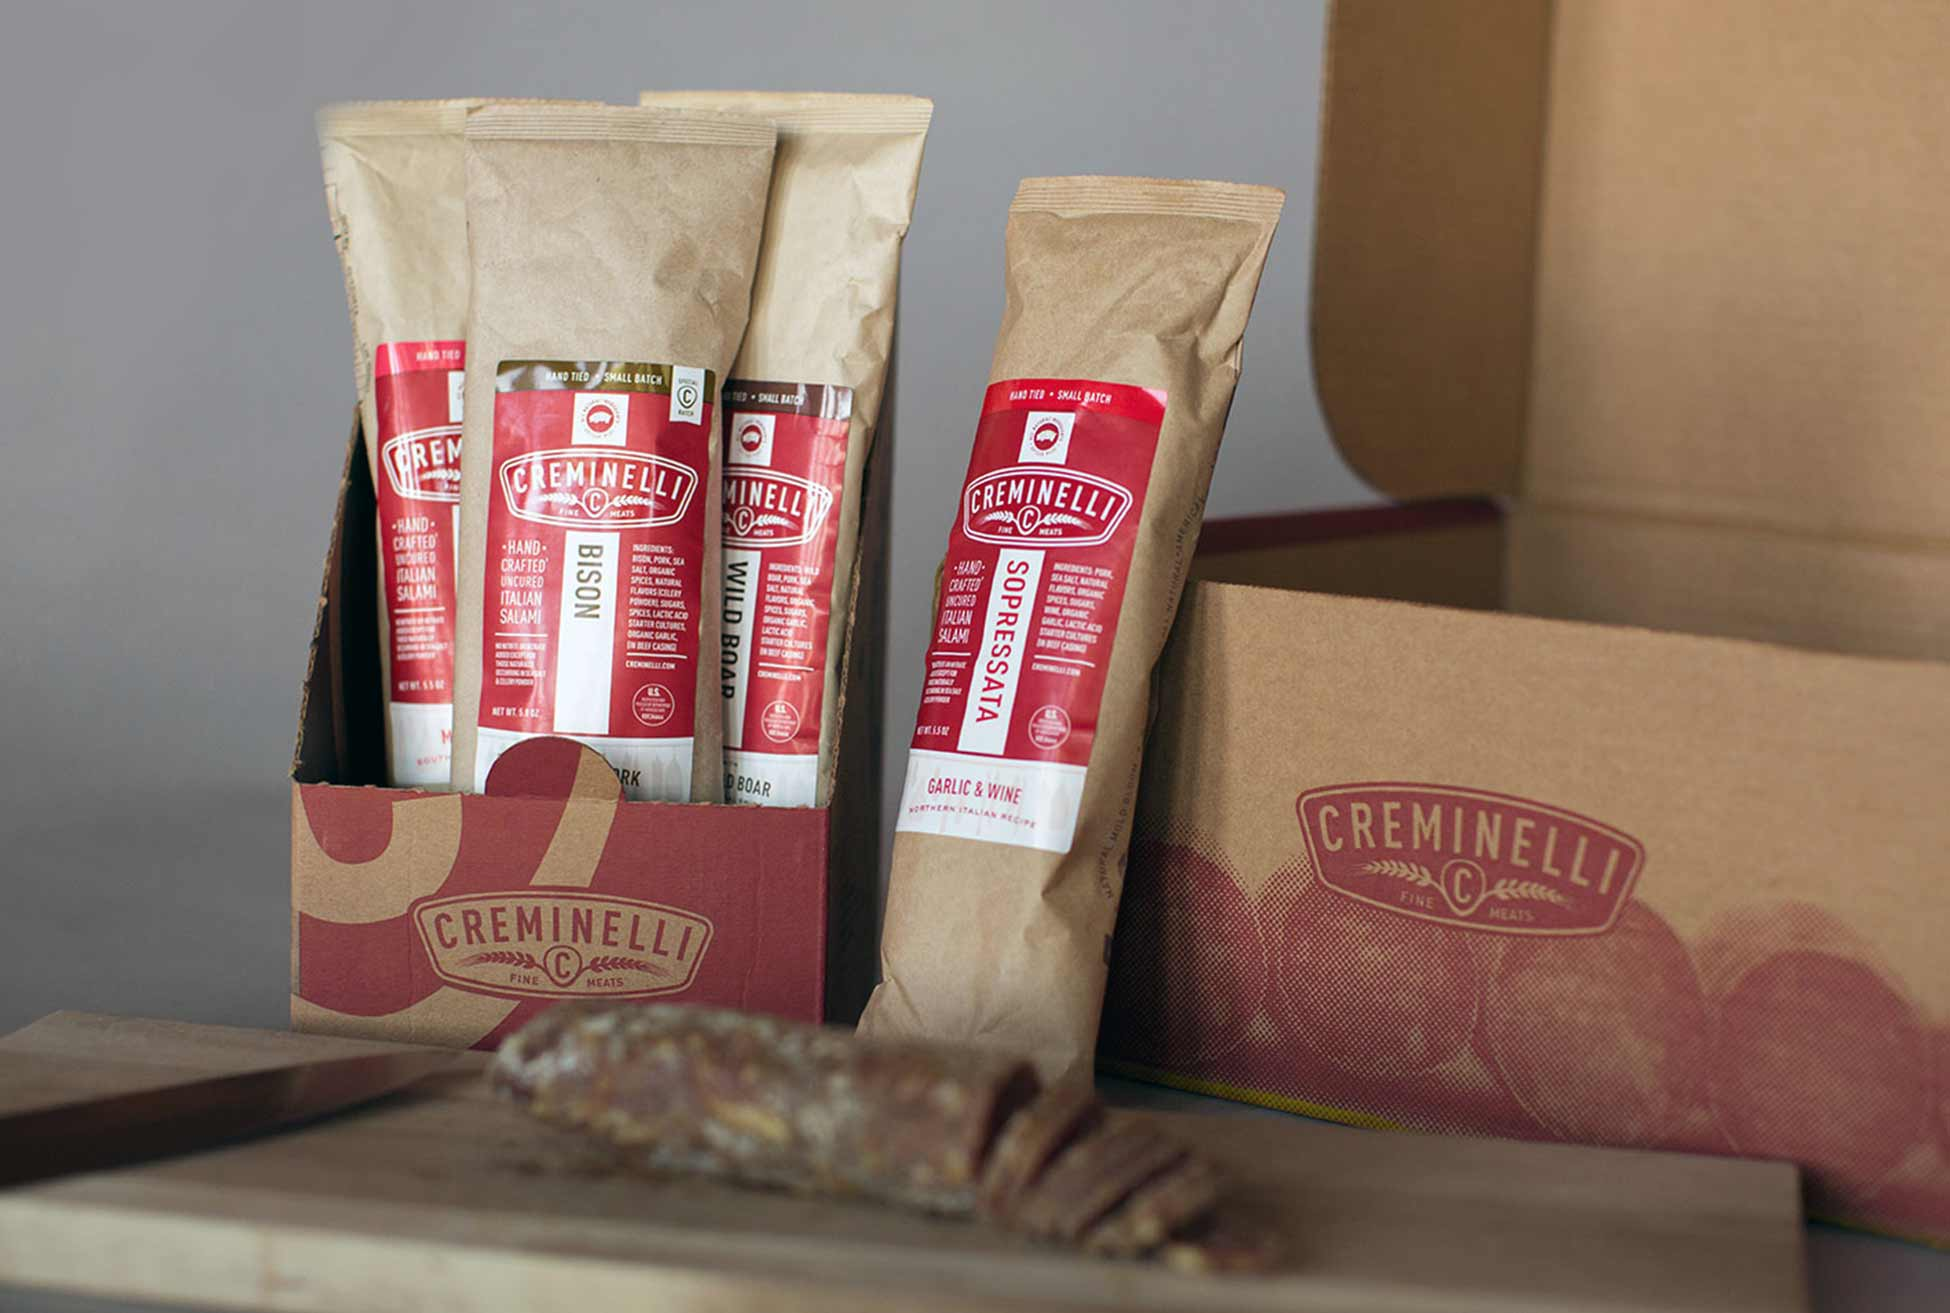 creminelli_packaging-display.jpg